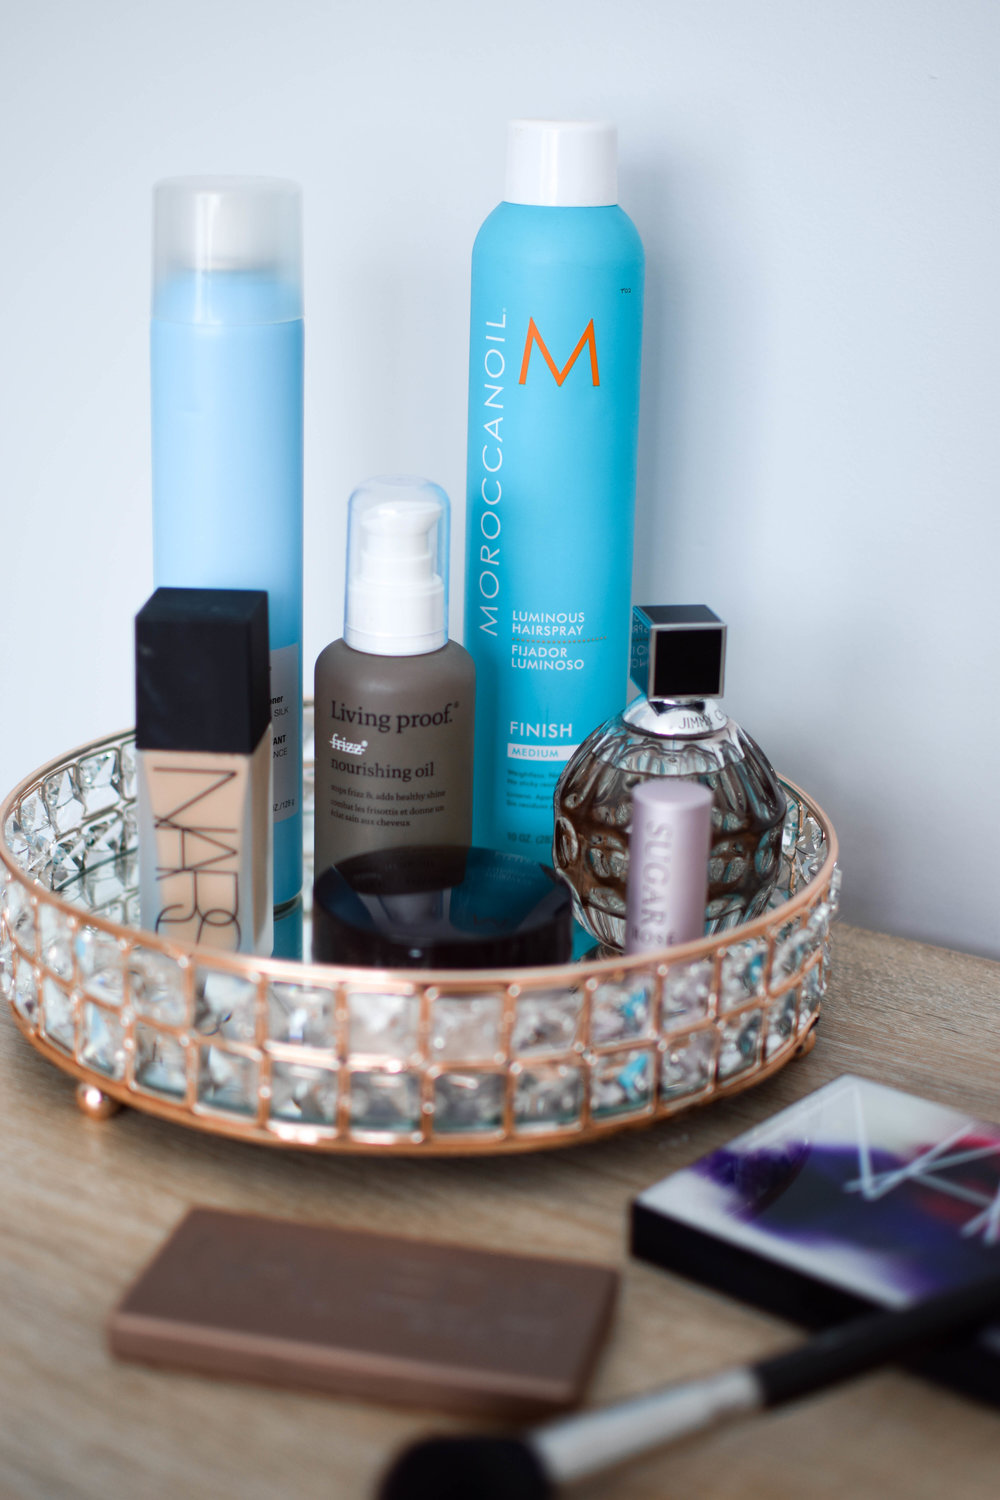 holy grail beauty products / hair care must haves